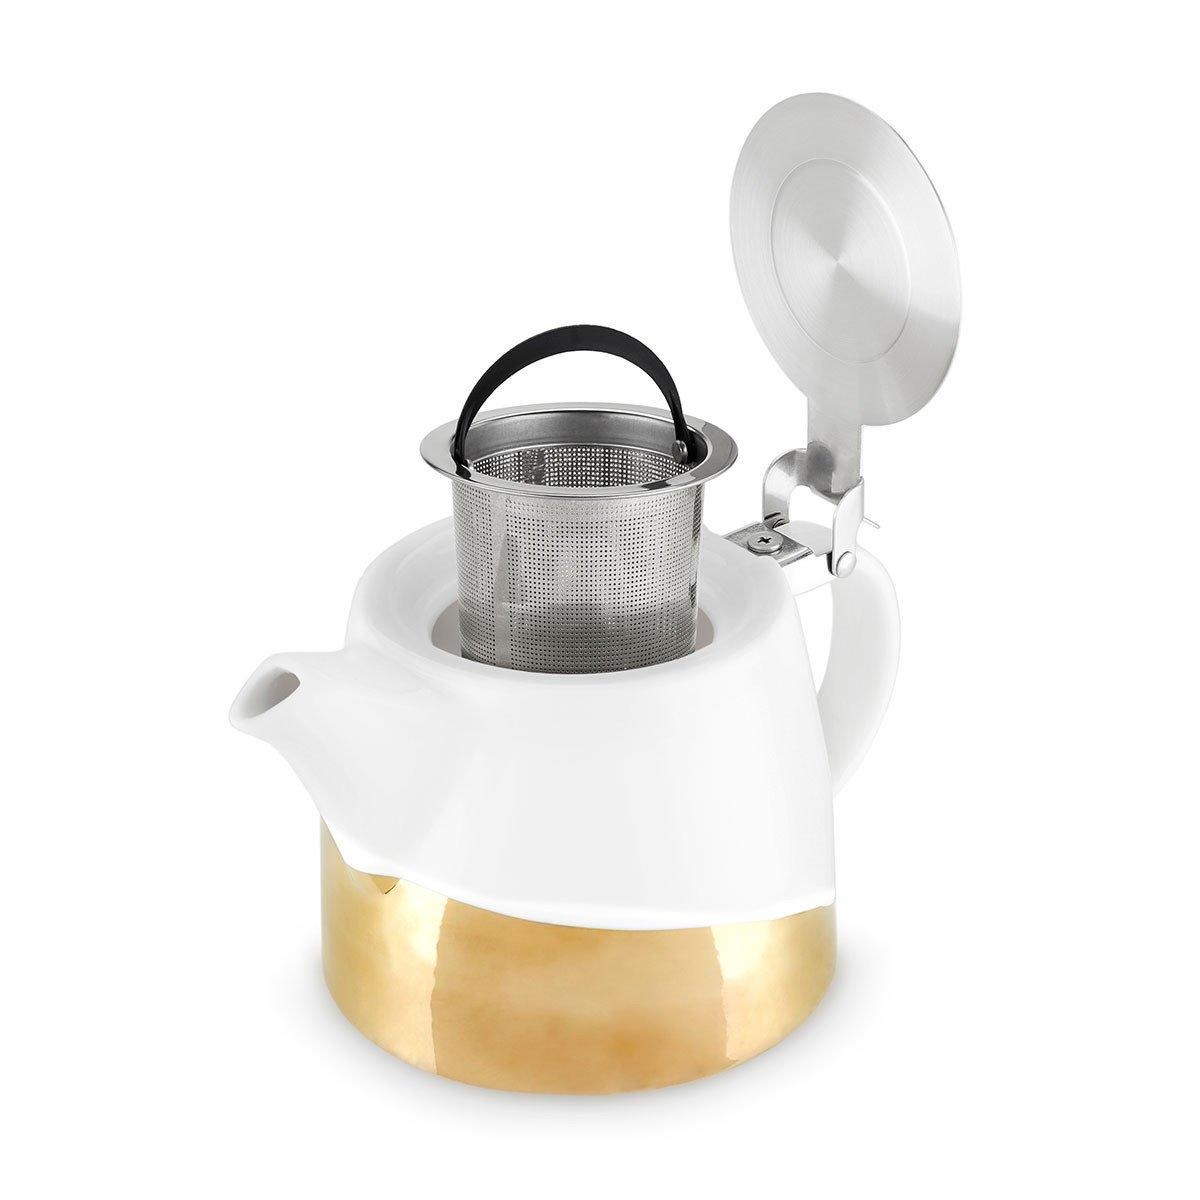 Harper Gold Dipped Ceramic Teapot and Infuser - Only £26.99